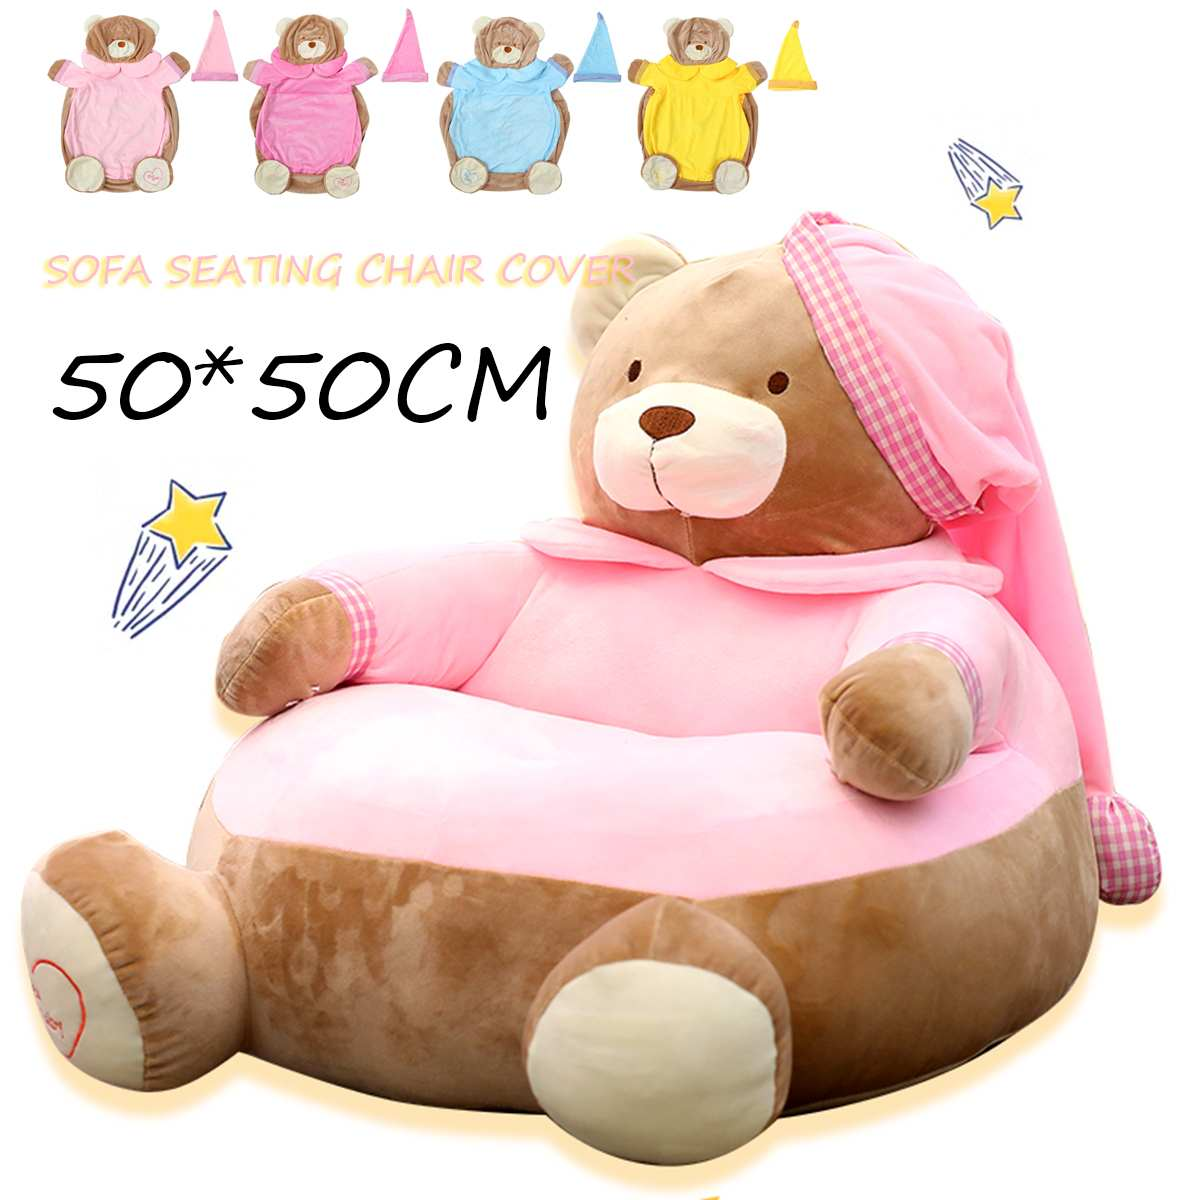 Baby Cartoon Seat Cover Soft Plush Toy Stuffed Bear Animals Comfortable Child Lazy Sofa Gift Home Decoration